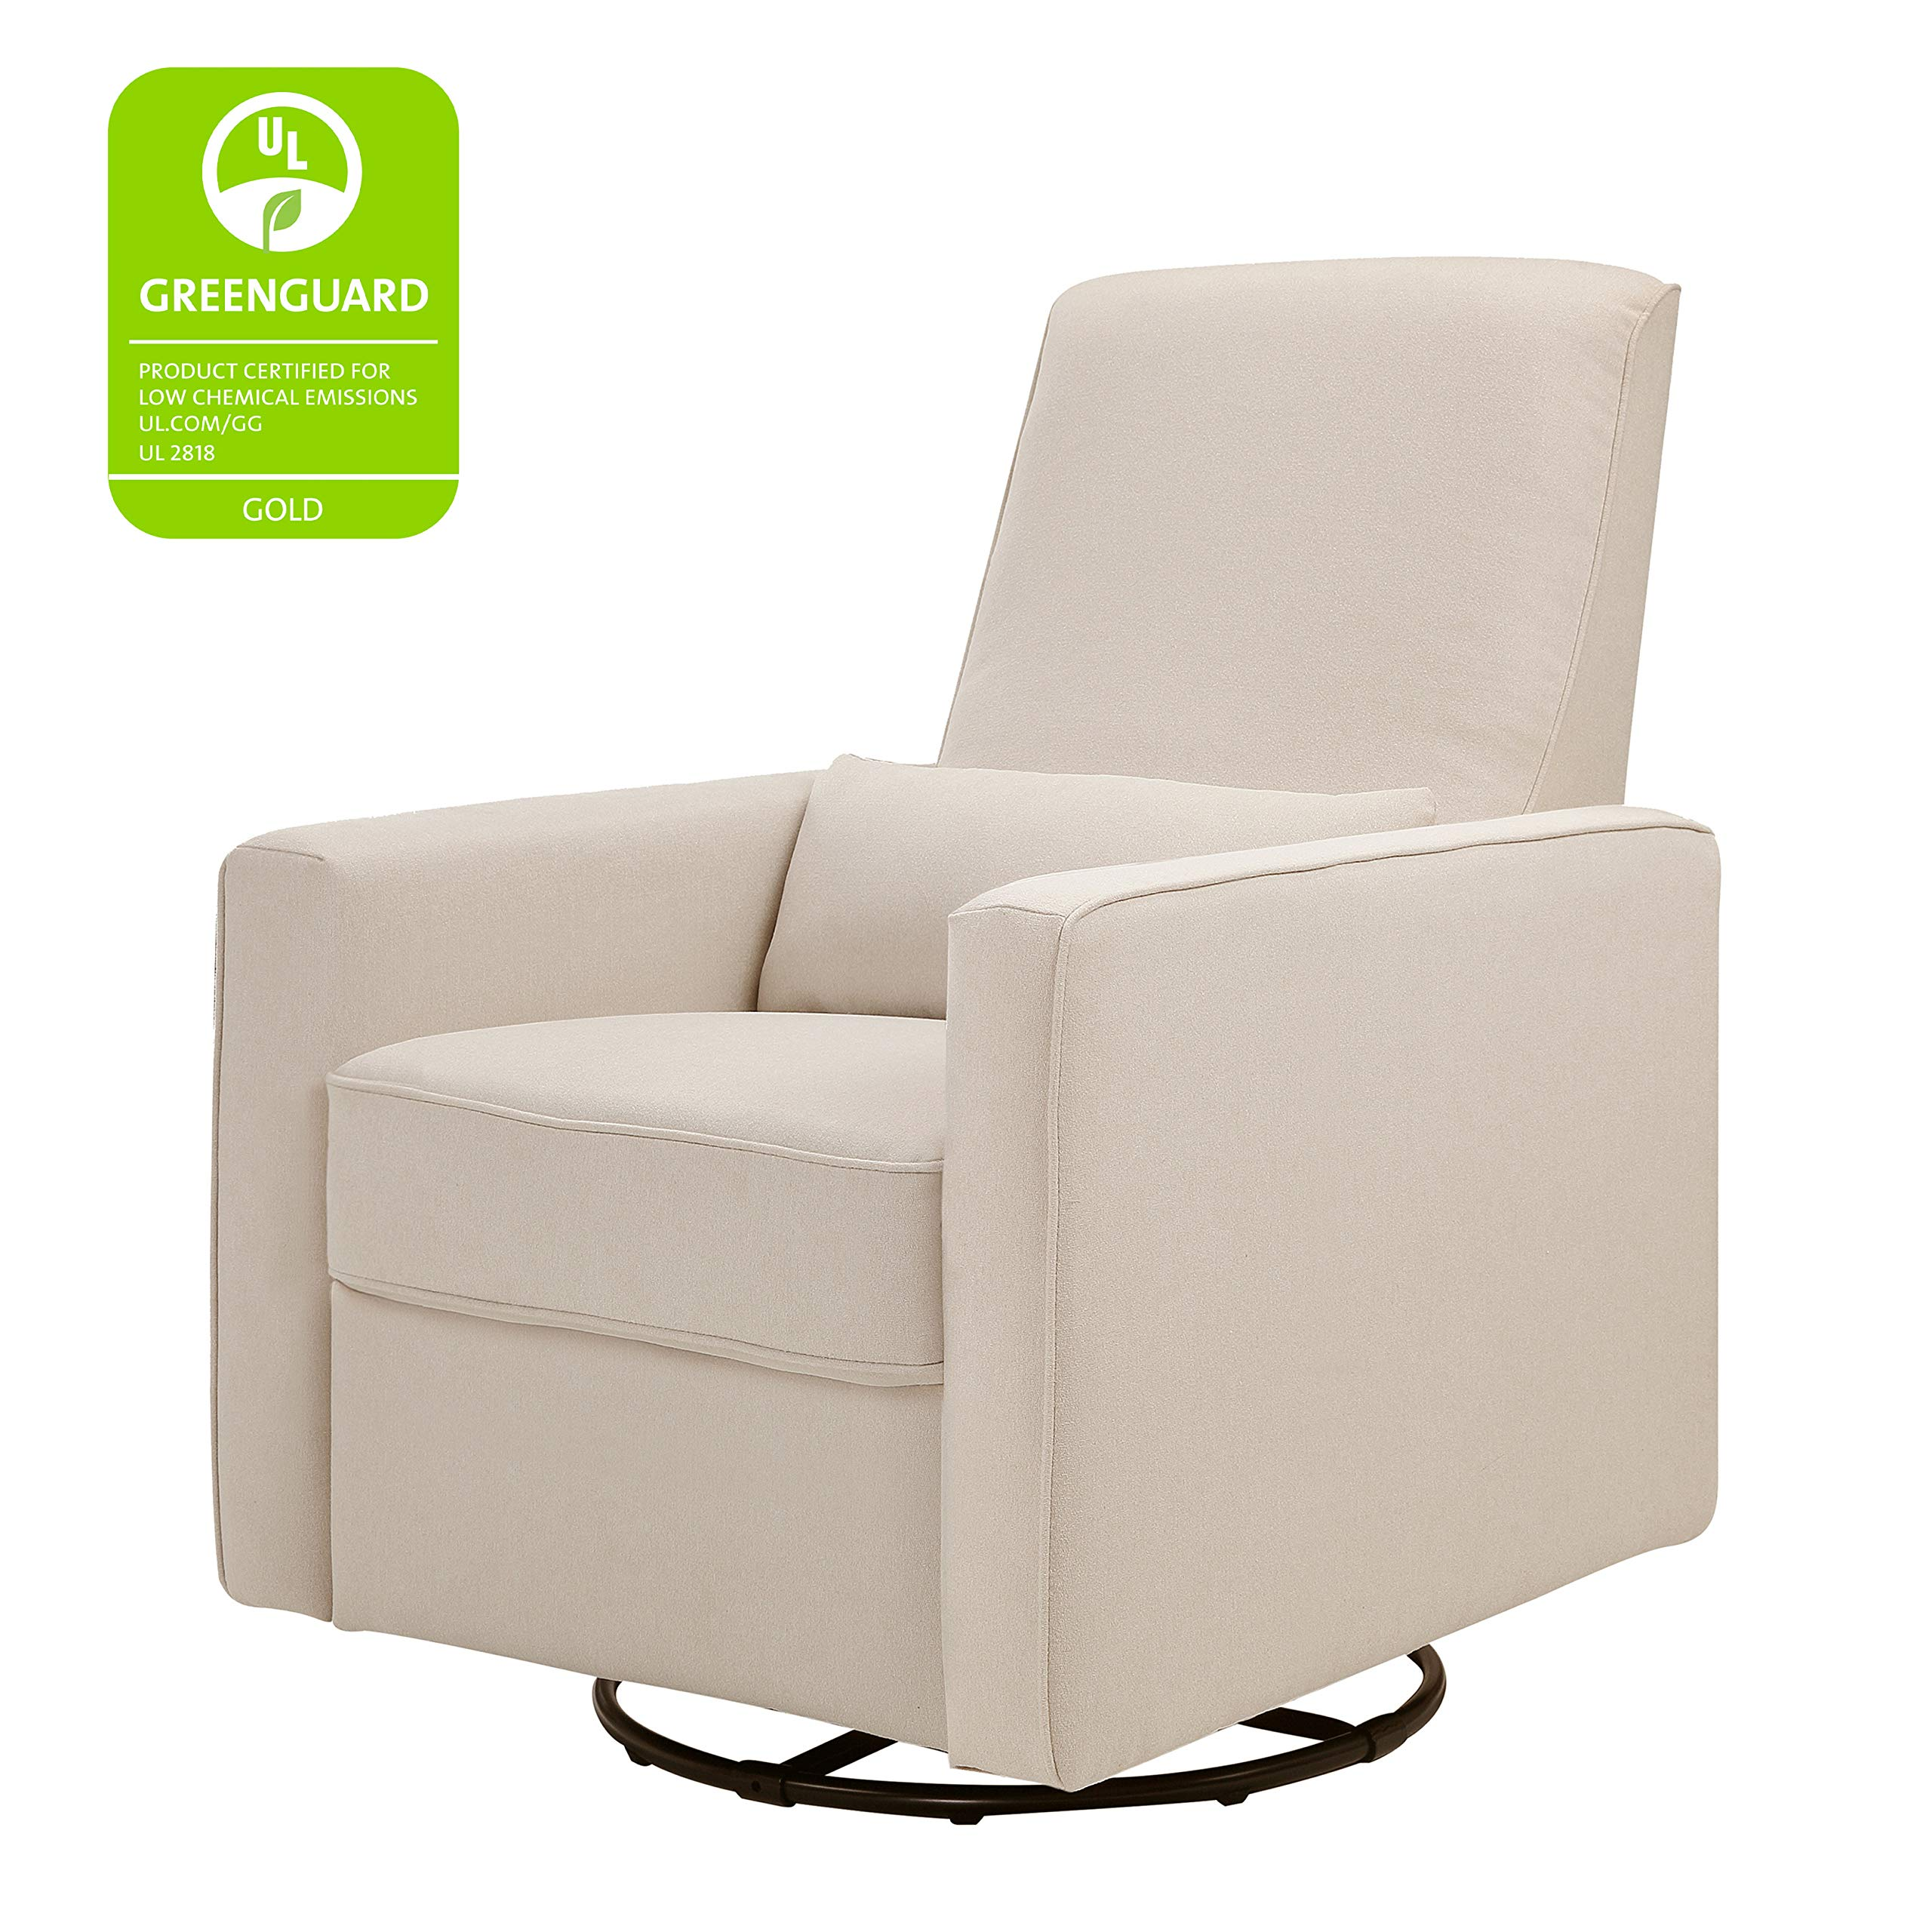 DaVinci Piper Upholstered Recliner and Swivel Glider, Cream by DaVinci